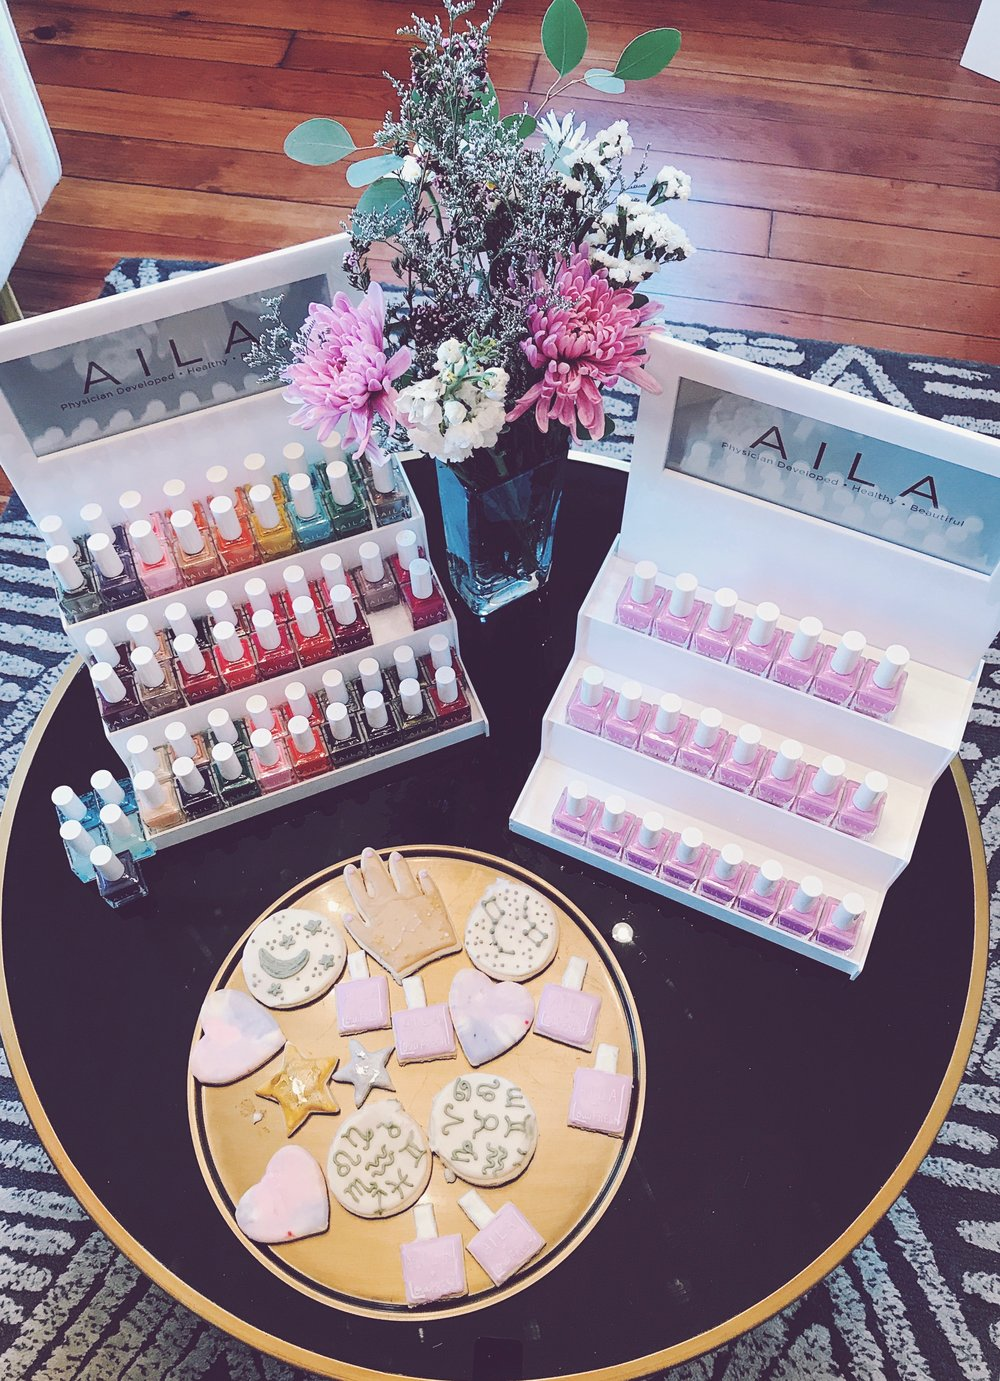 Cookies by Leeuw Bake Shop + AILA's new 'Supernova' polish on the top right!